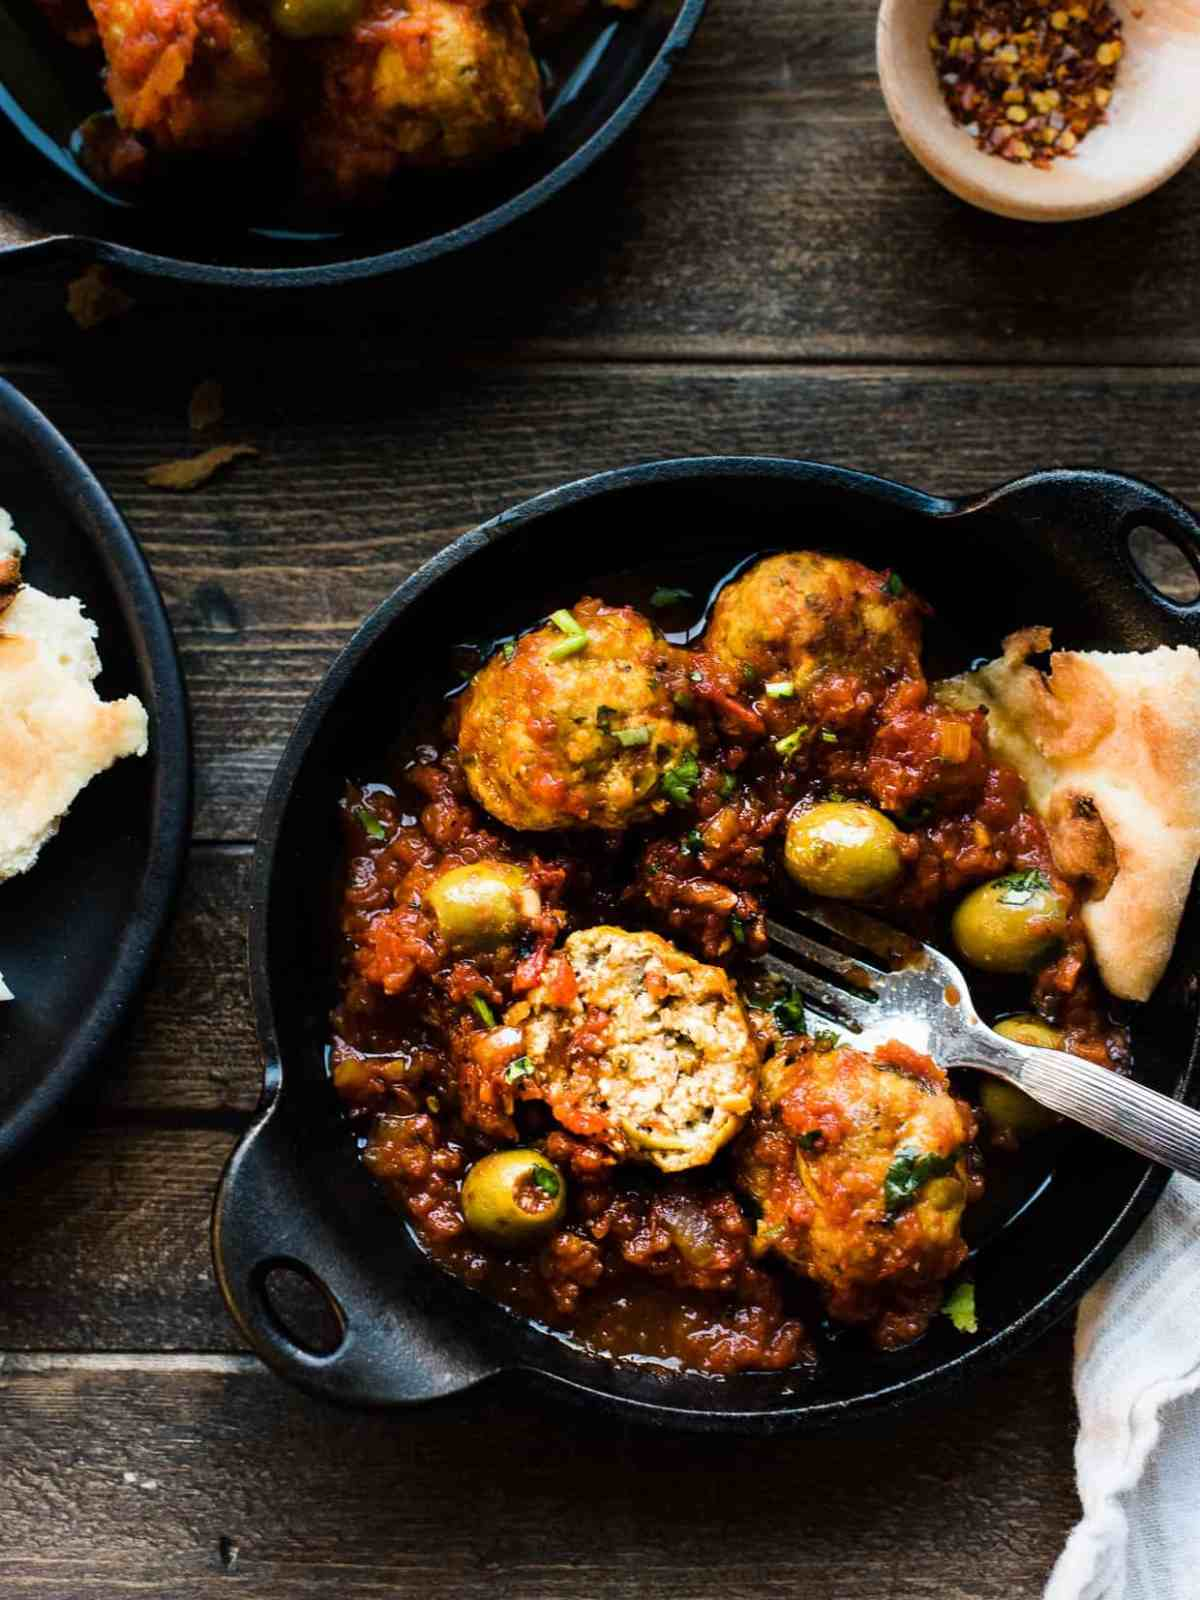 Bowl of albondigas with olives in tomato sauce.